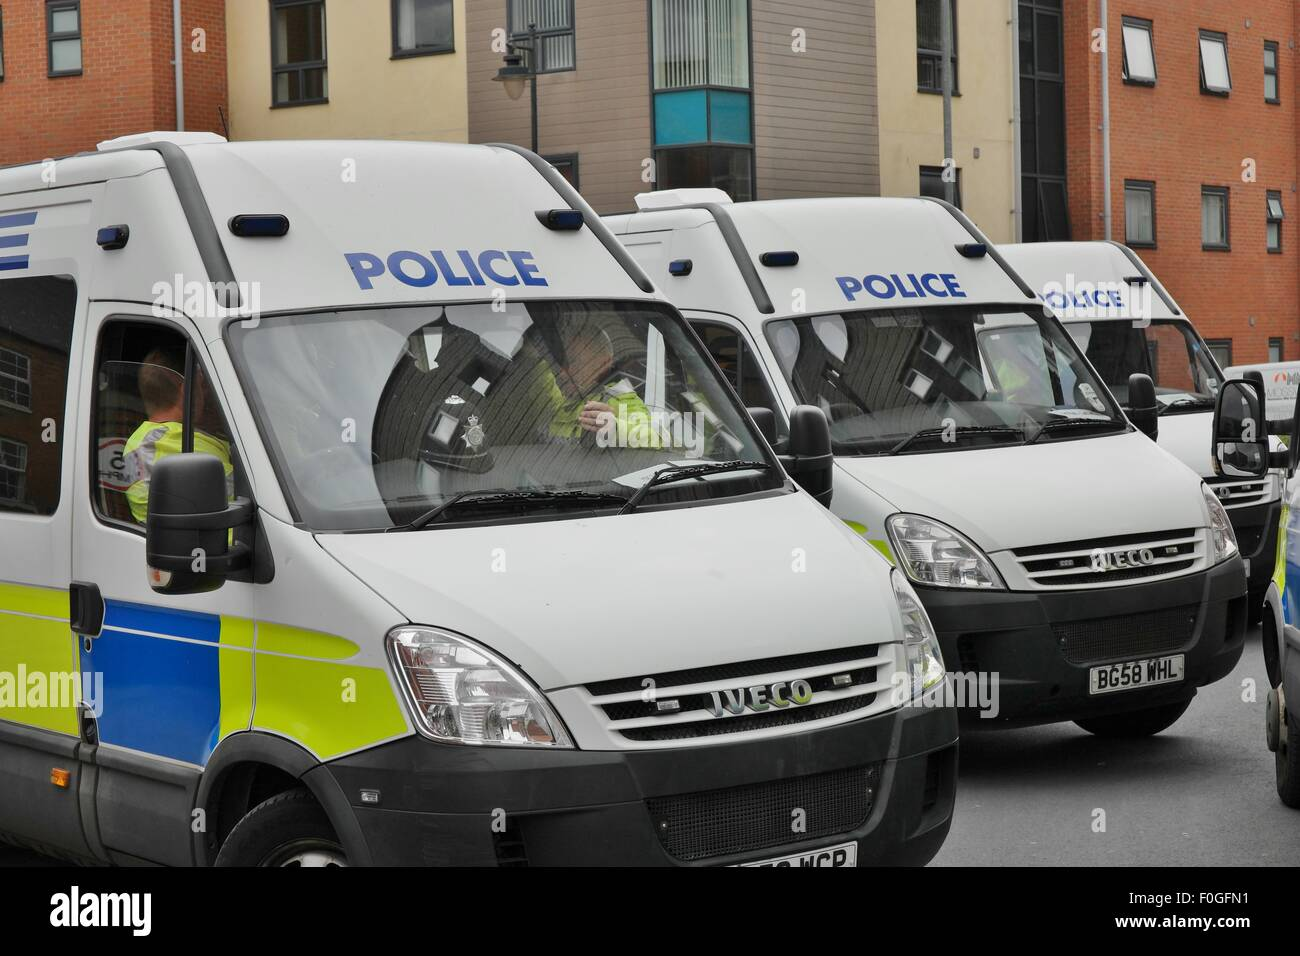 Policing at English Defence League Rally in Walsall England on 15 August 2015 - Stock Image